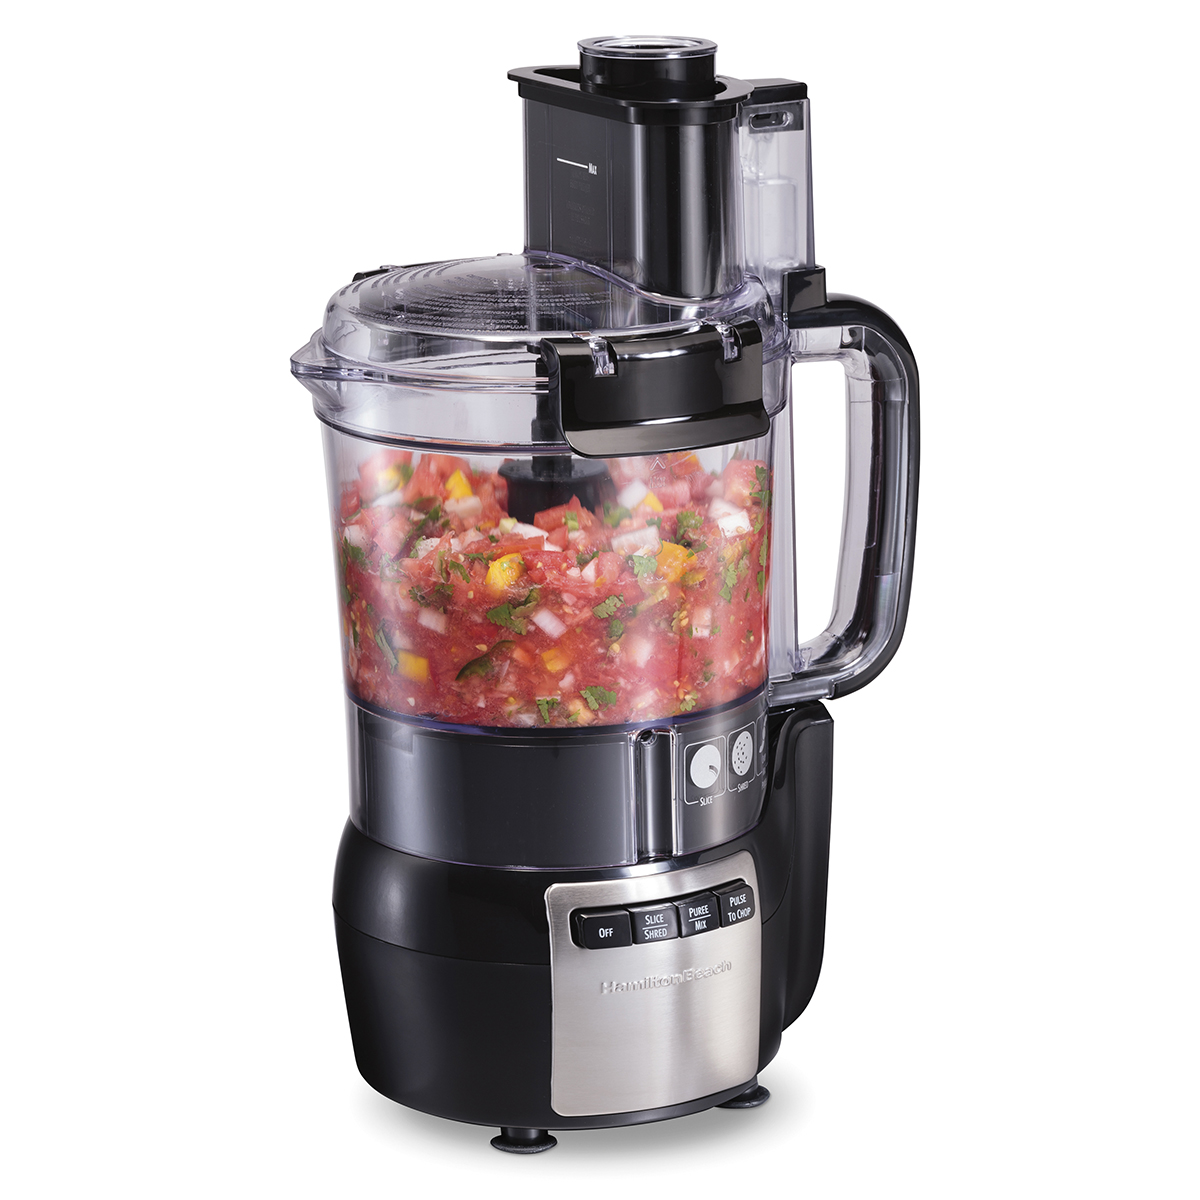 12 Cup Stack & Snap™ Food Processor, Black (70724)